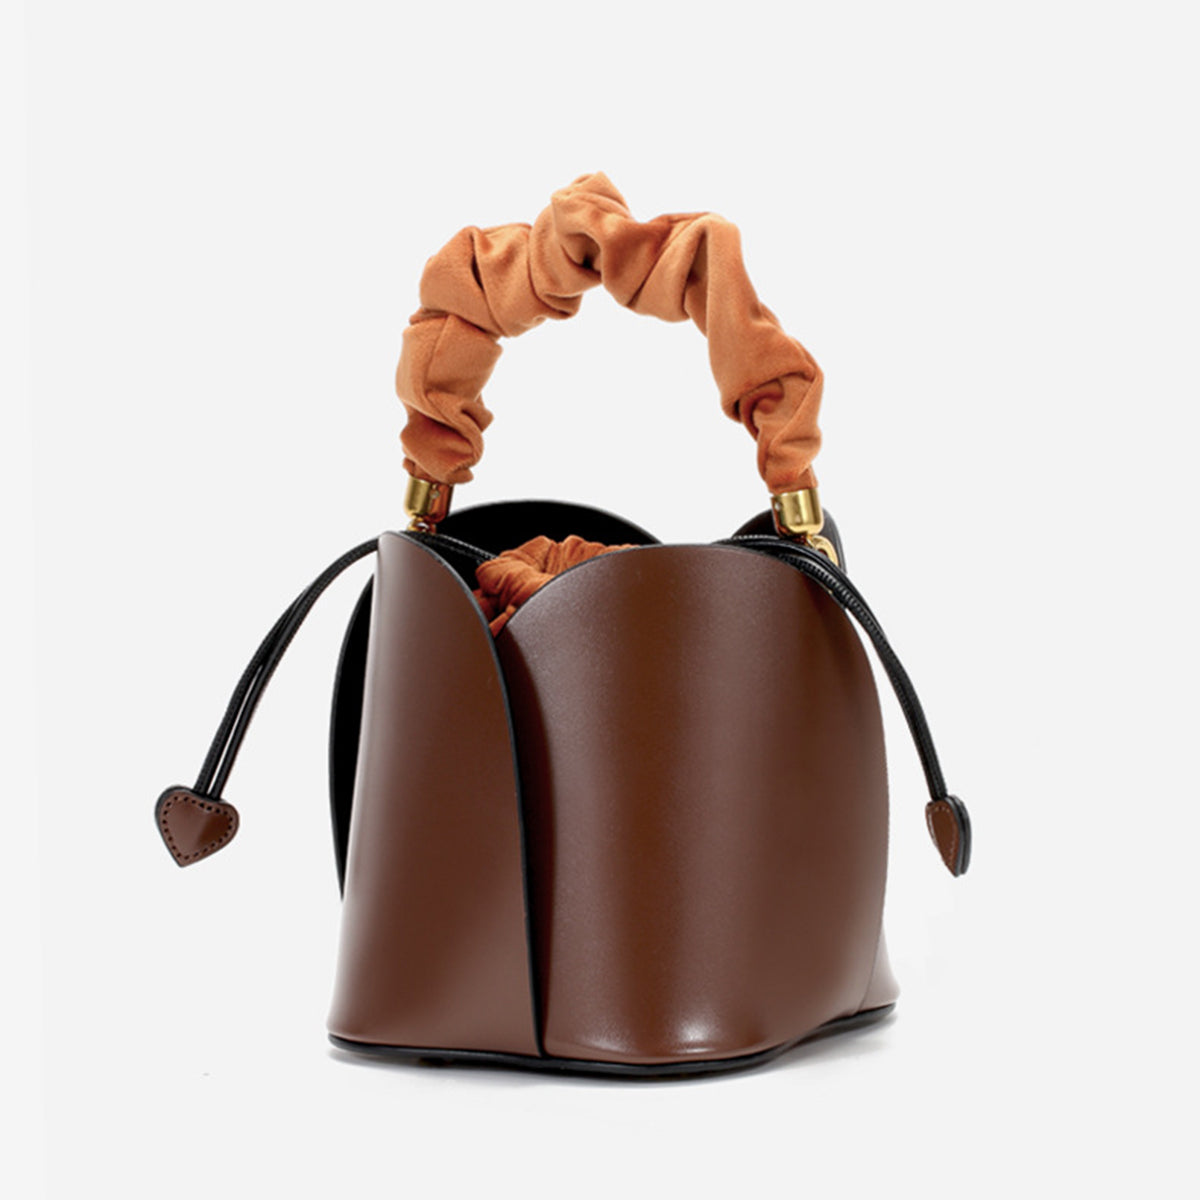 Women's Genuine Leather Bucket Bags with Drawstring Bag inside